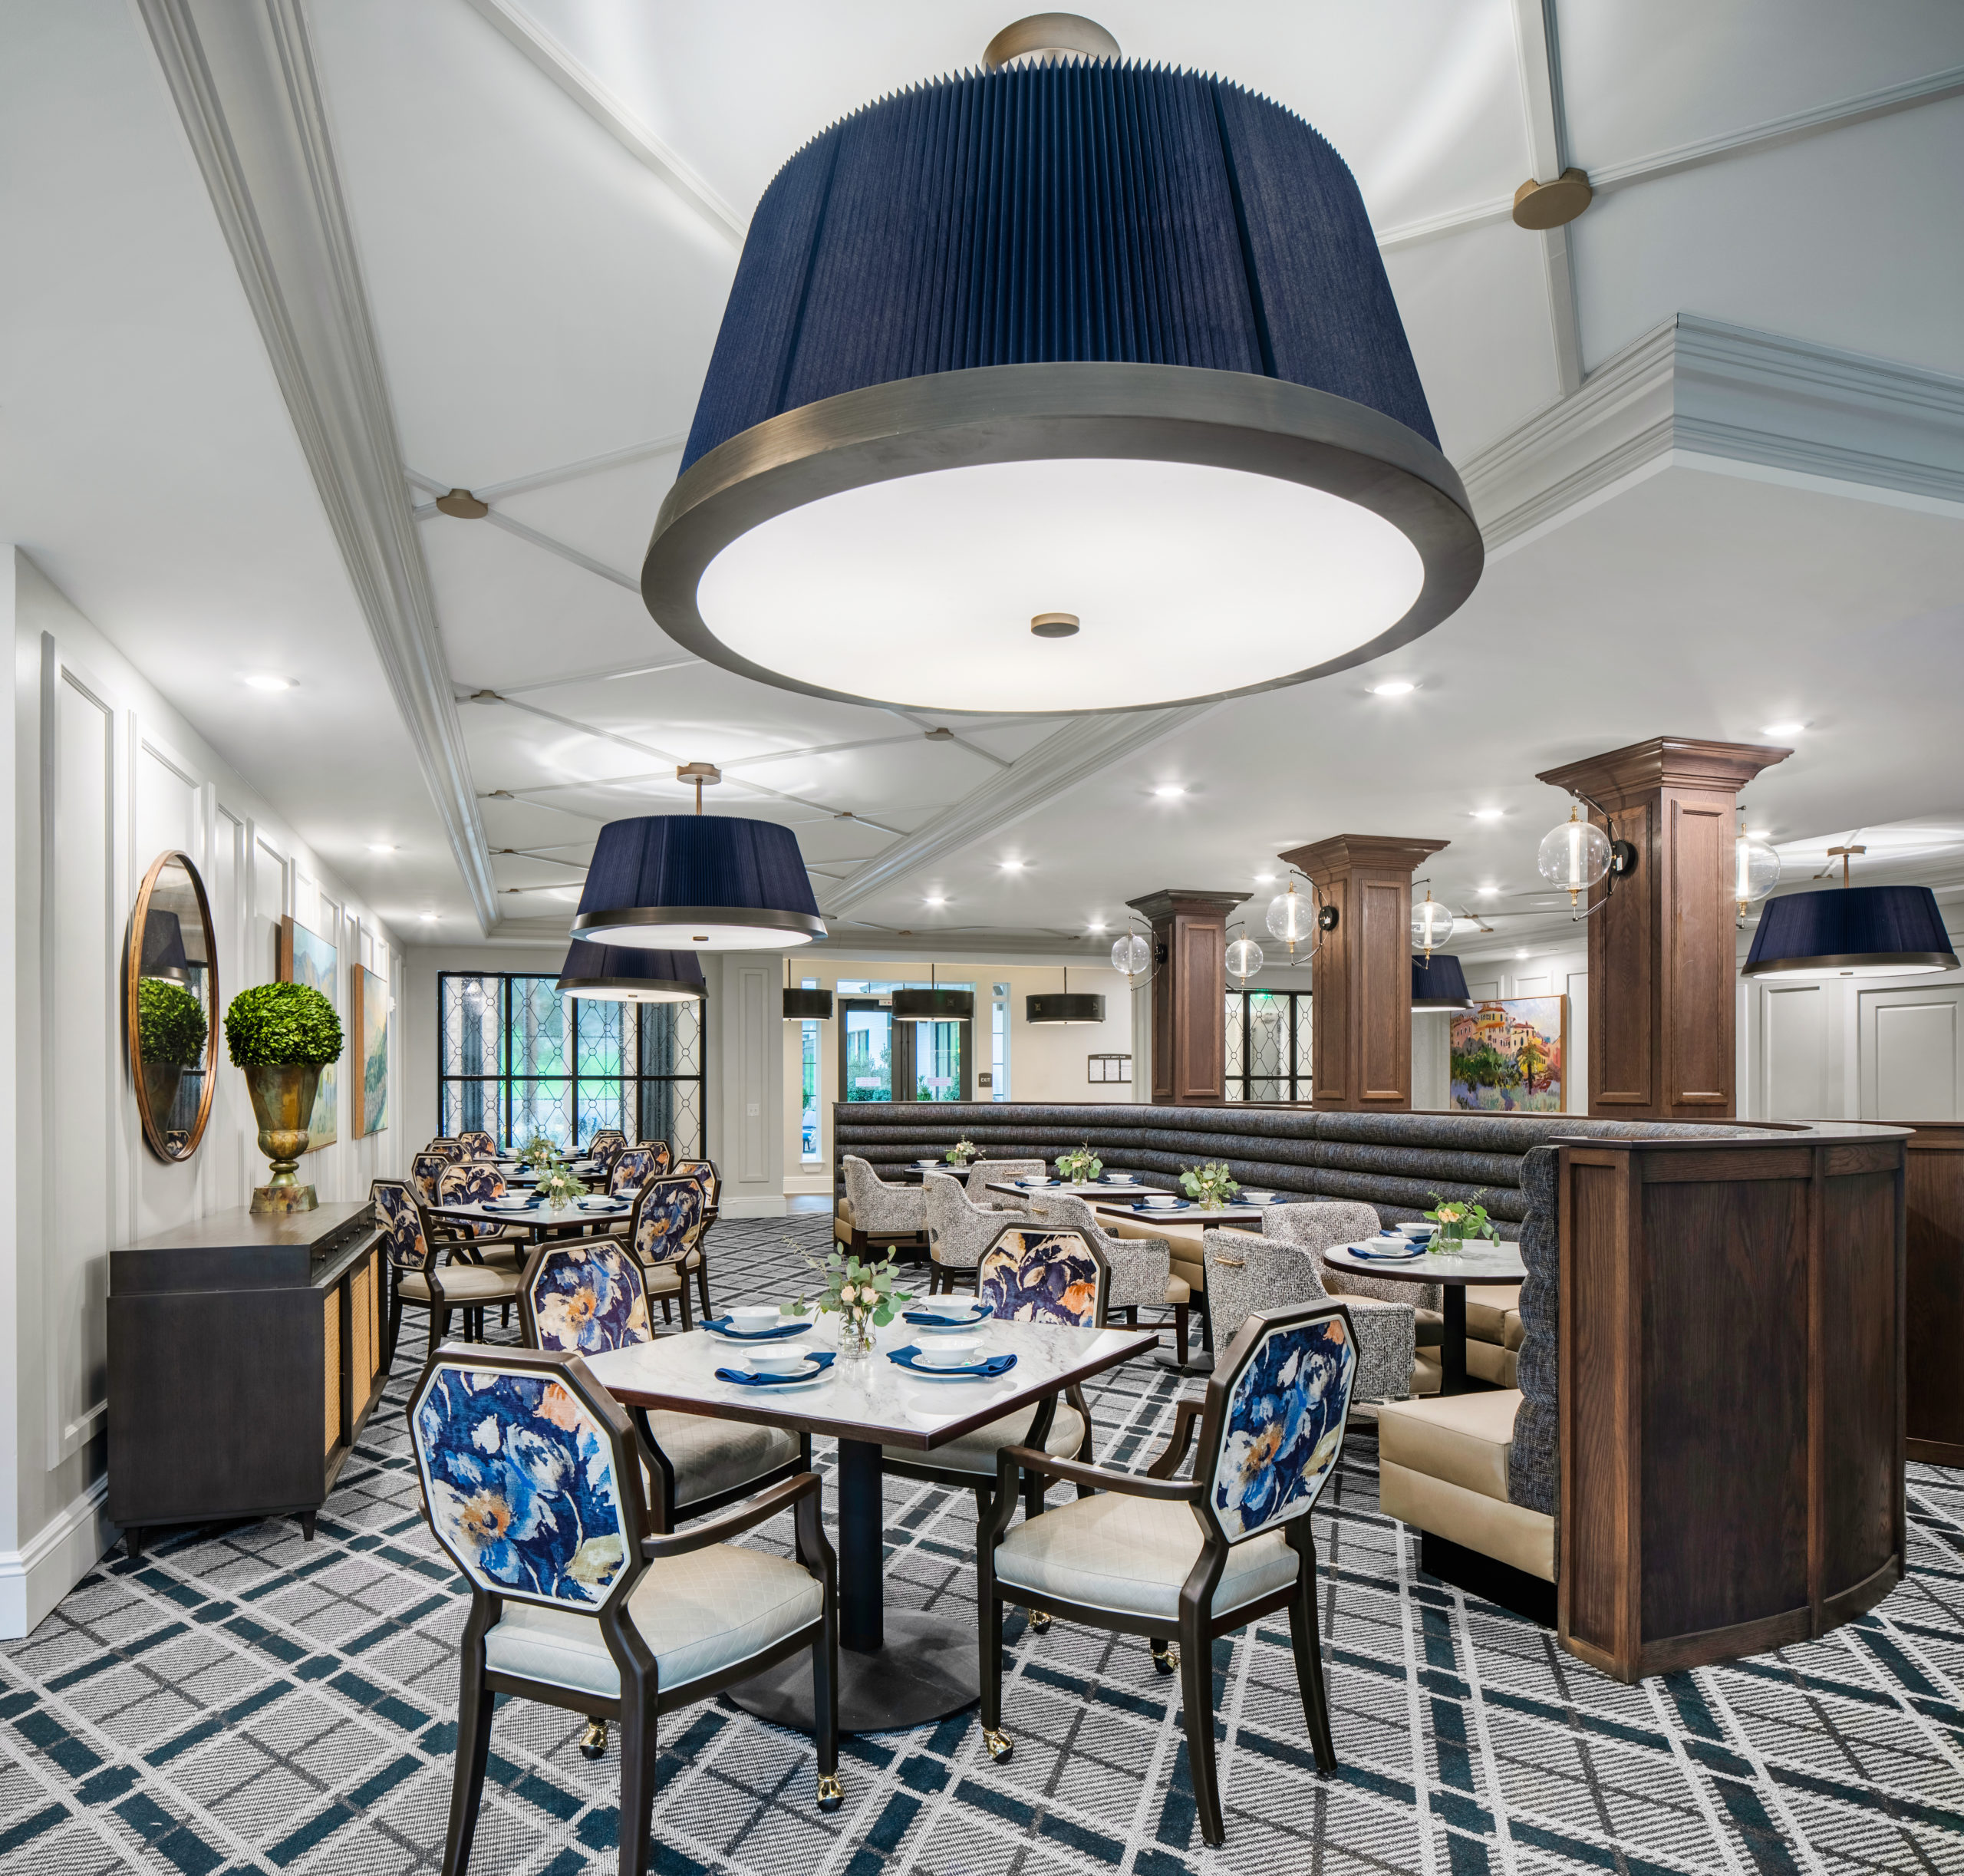 Longleaf main dining room with blue light fixtures, blue and beige curved booth, tables and floral backed chairs with wood columns and globe light fixtures at right, buffet table, mirror and potted plant at left